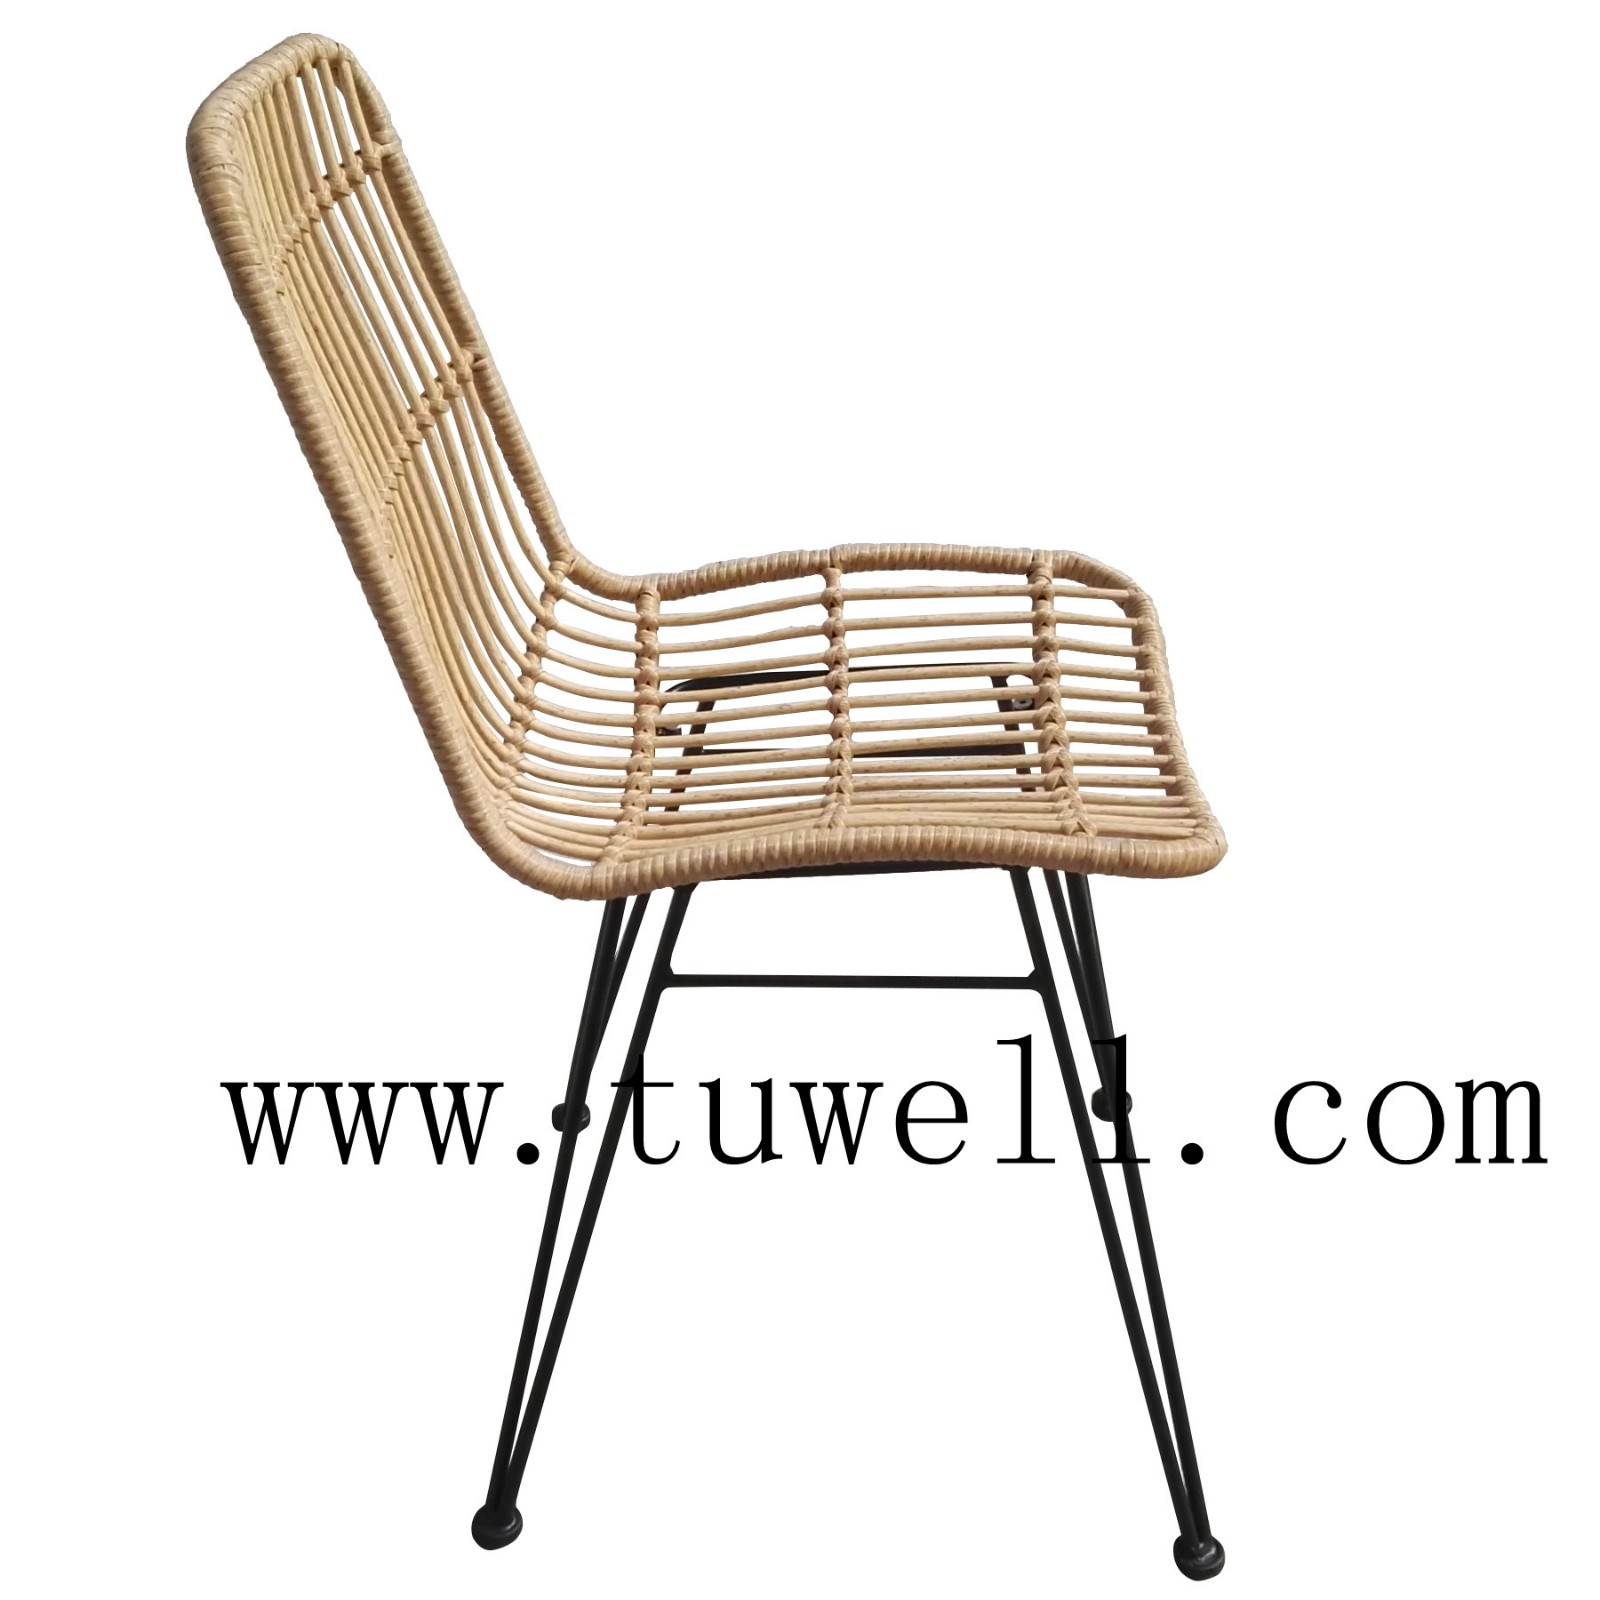 Tuwell-Find TW8708S Steel Rattan Chair-5